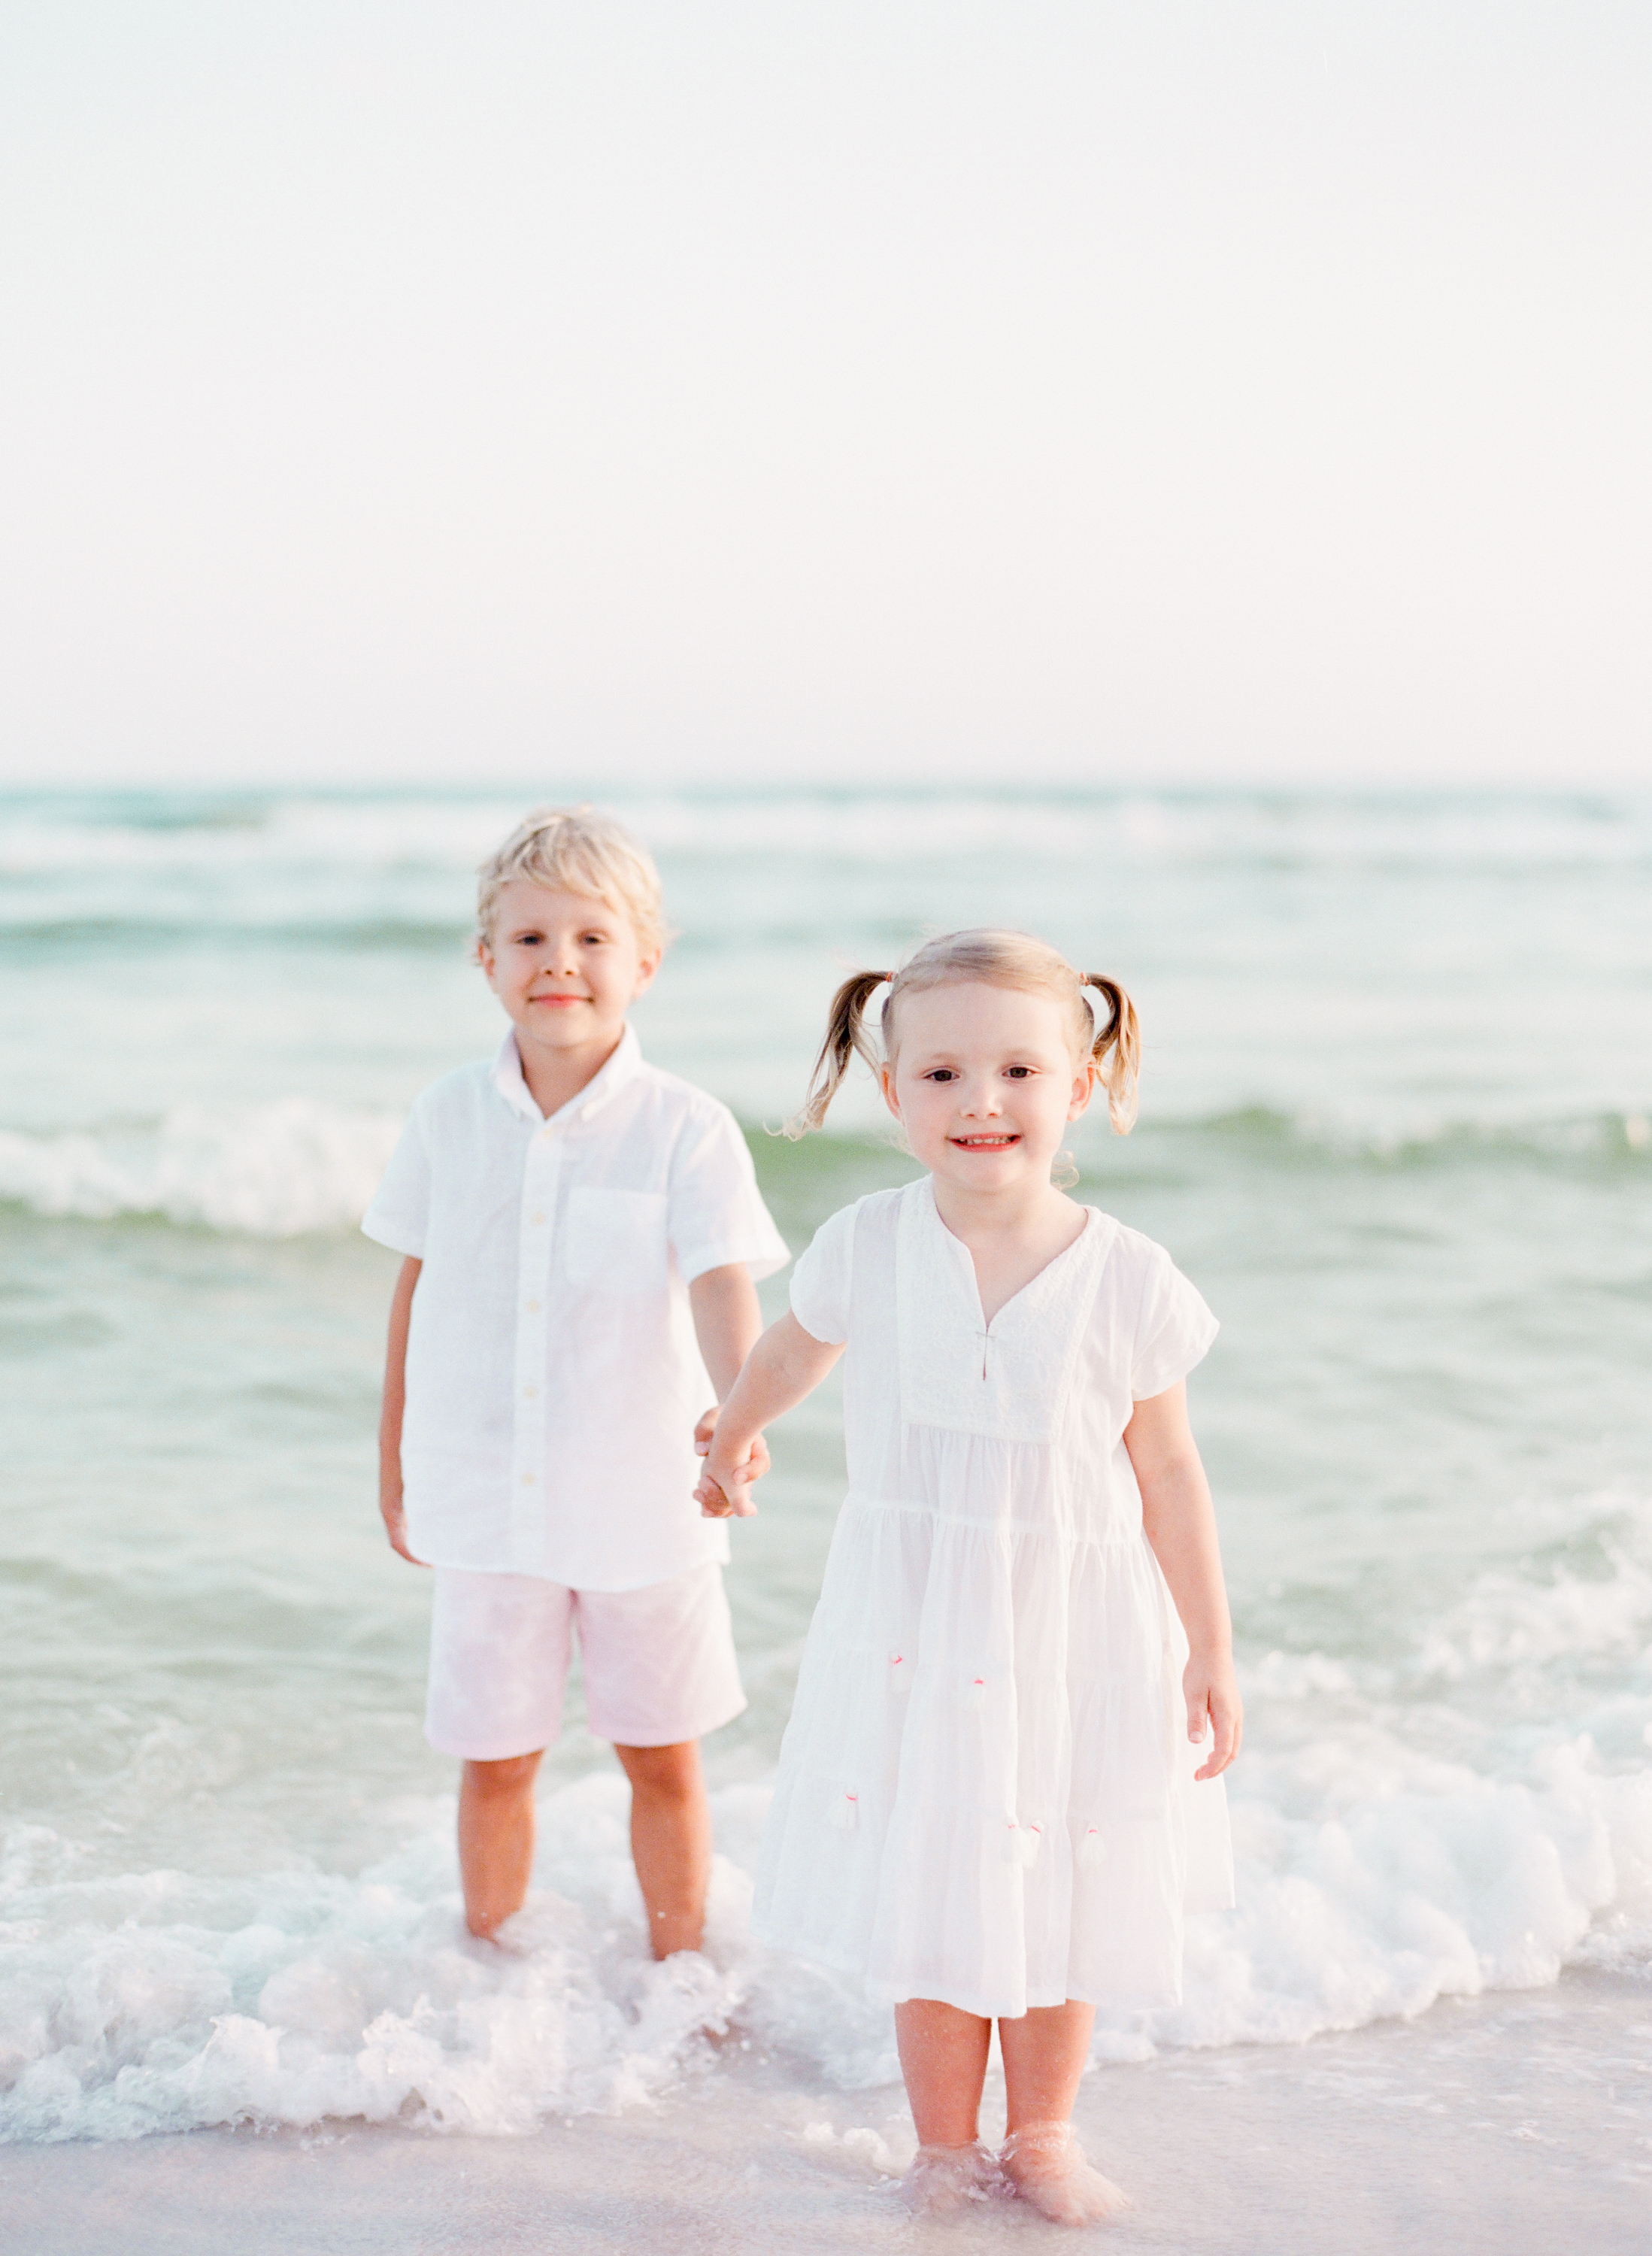 Neutral inspired beach outfits | Kaylie B. Poplin Photography | Watercolor, Florida Fine Art Family & Wedding Photographer